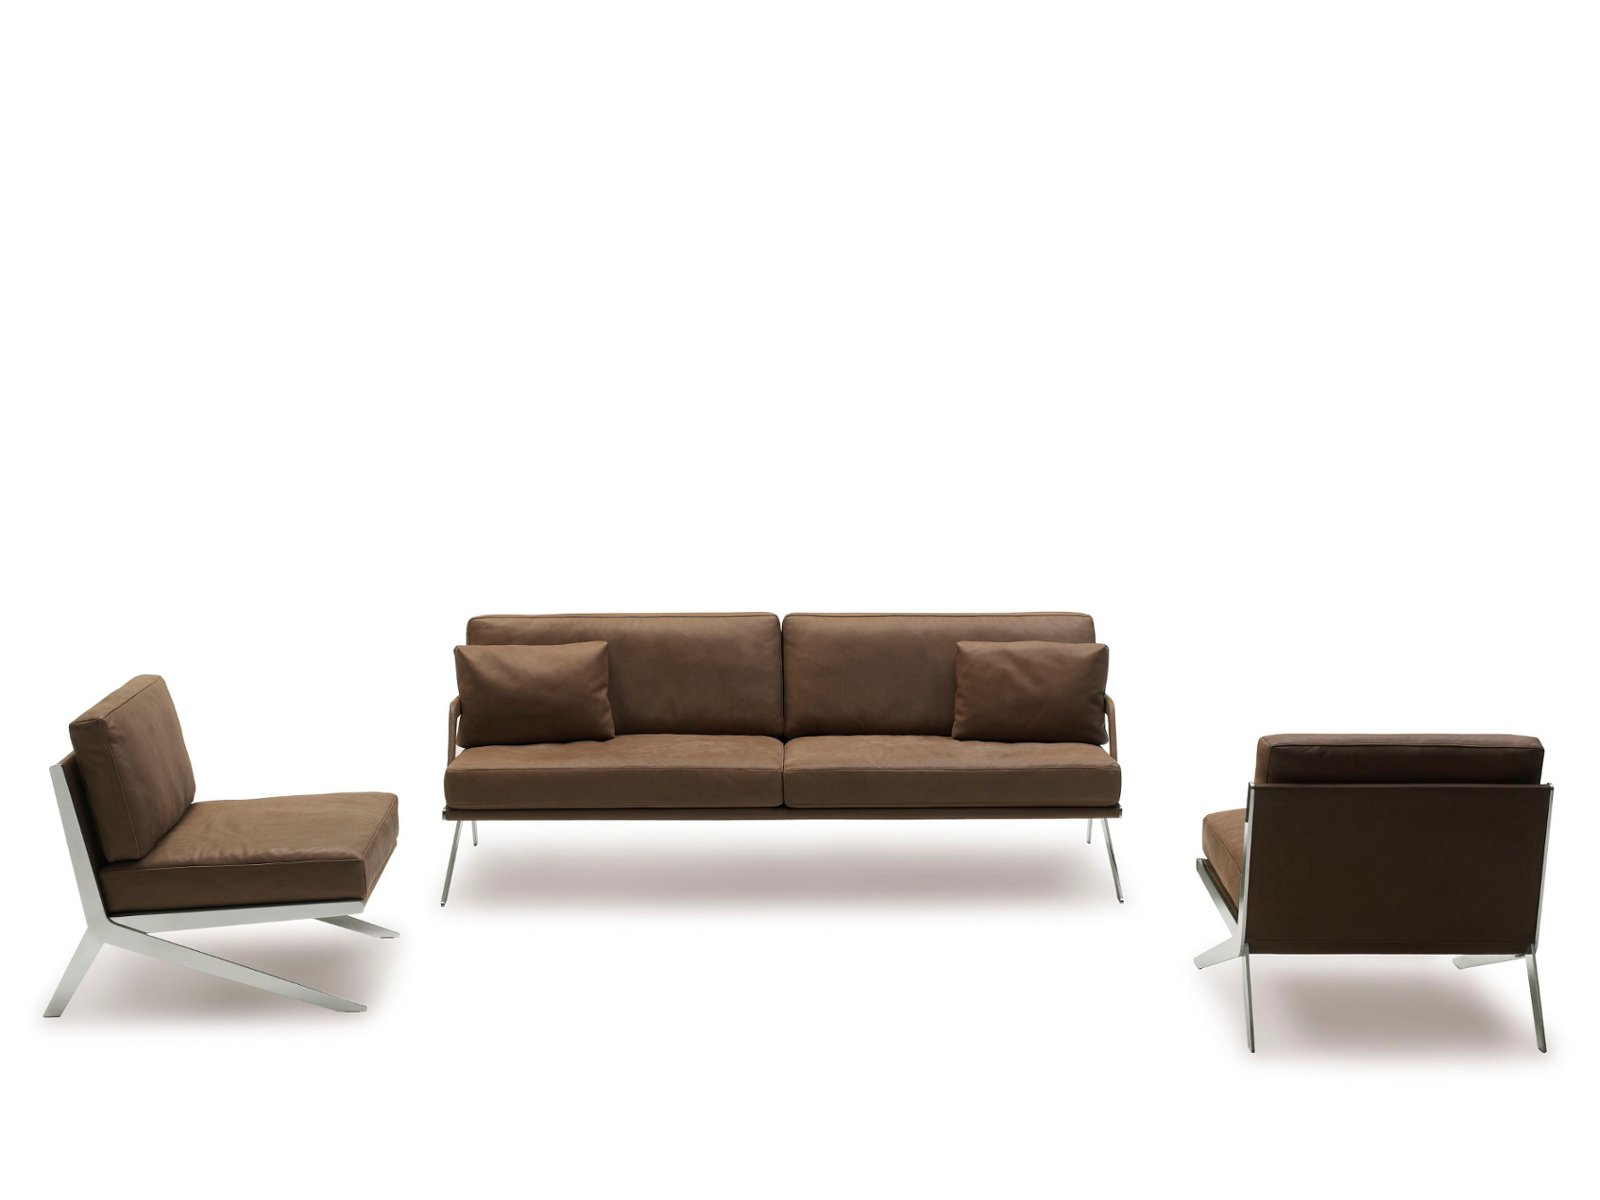 ds 60 sofa by de sede design gordon guillaumier. Black Bedroom Furniture Sets. Home Design Ideas